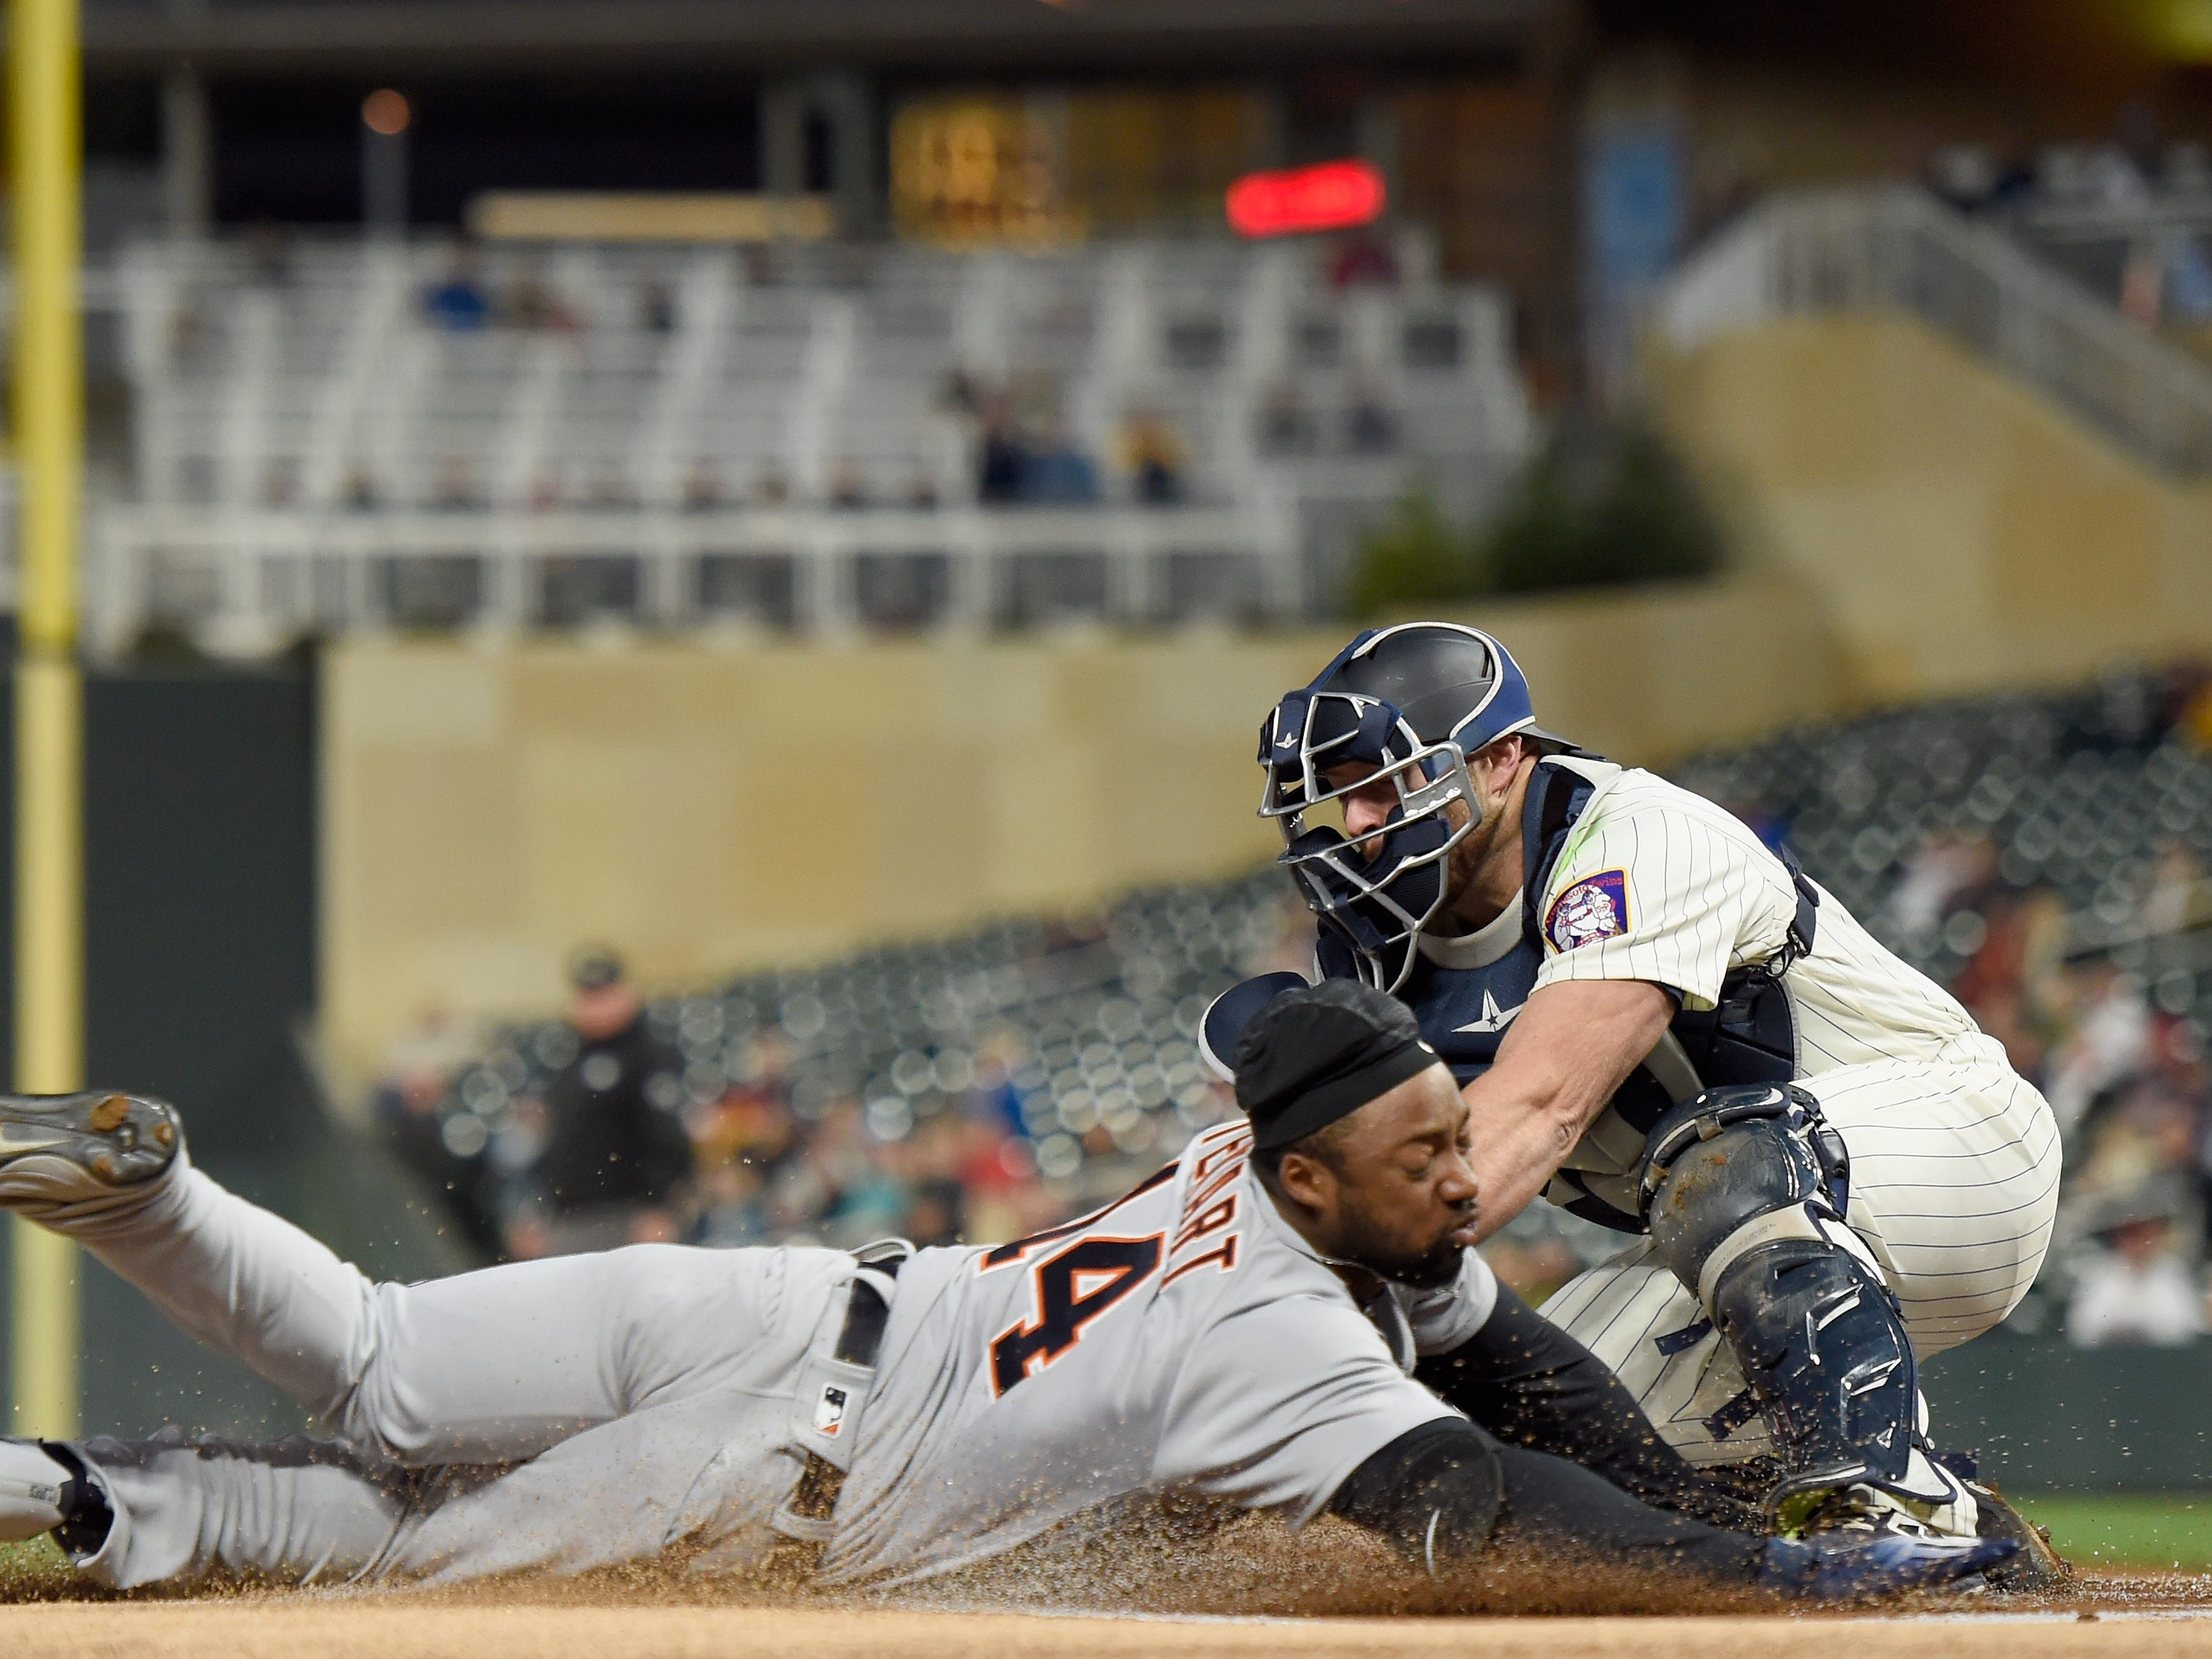 Chris Gimenez #46 of the Minnesota Twins tags out Christin Stewart #14 of the Detroit Tigers at home plate during the first inning of the game on September 26, 2018 at Target Field in Minneapolis, Minnesota.